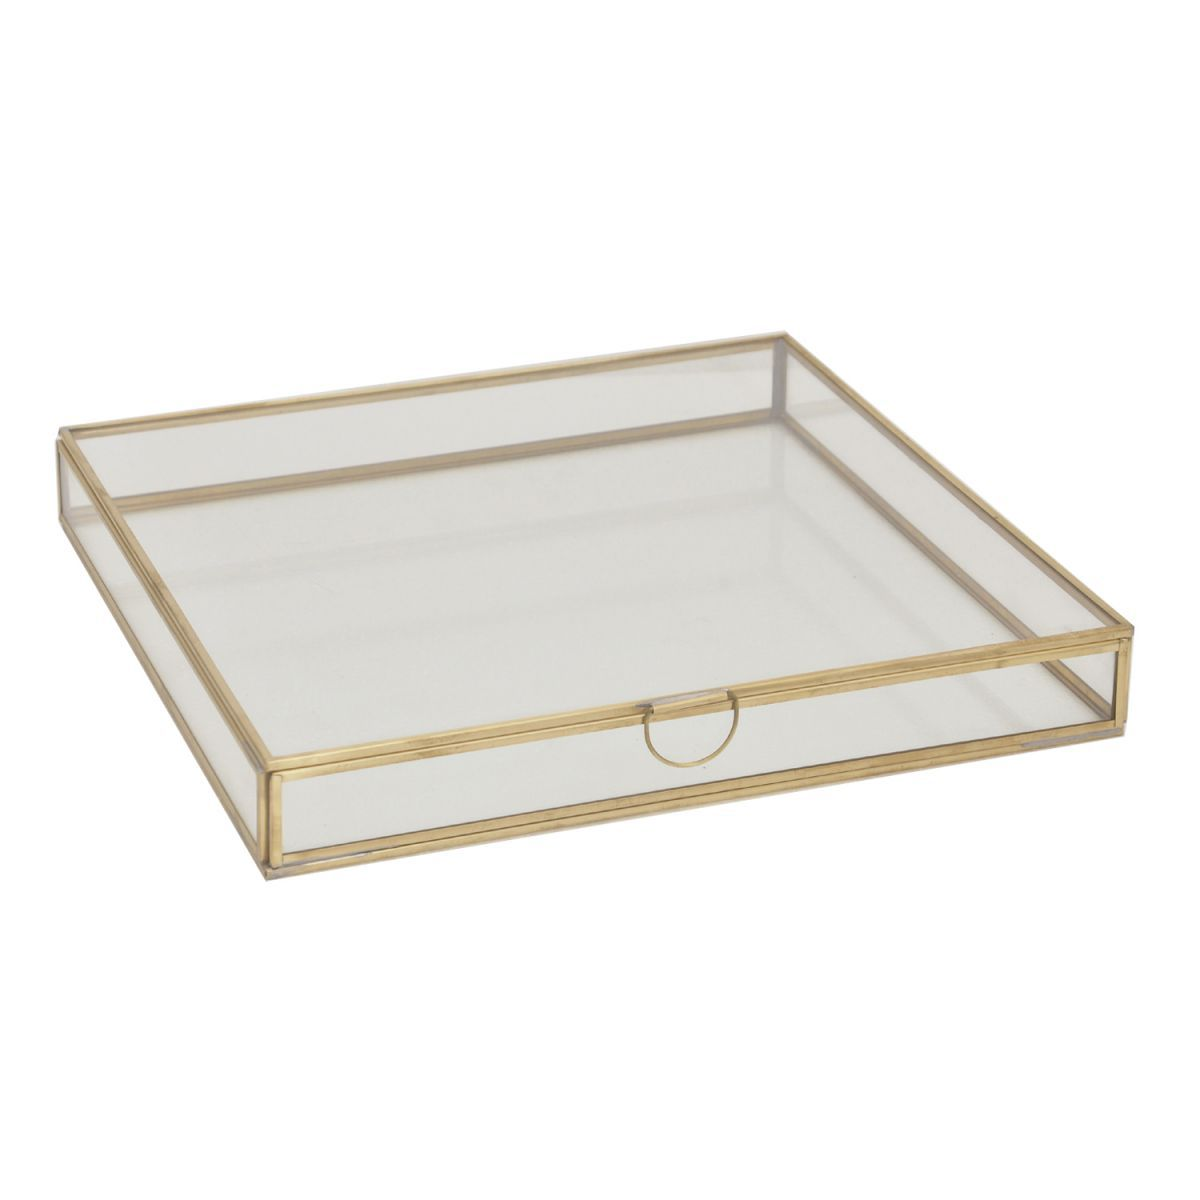 box handmade of brass with transparant glass square 31x31 hg 4cm